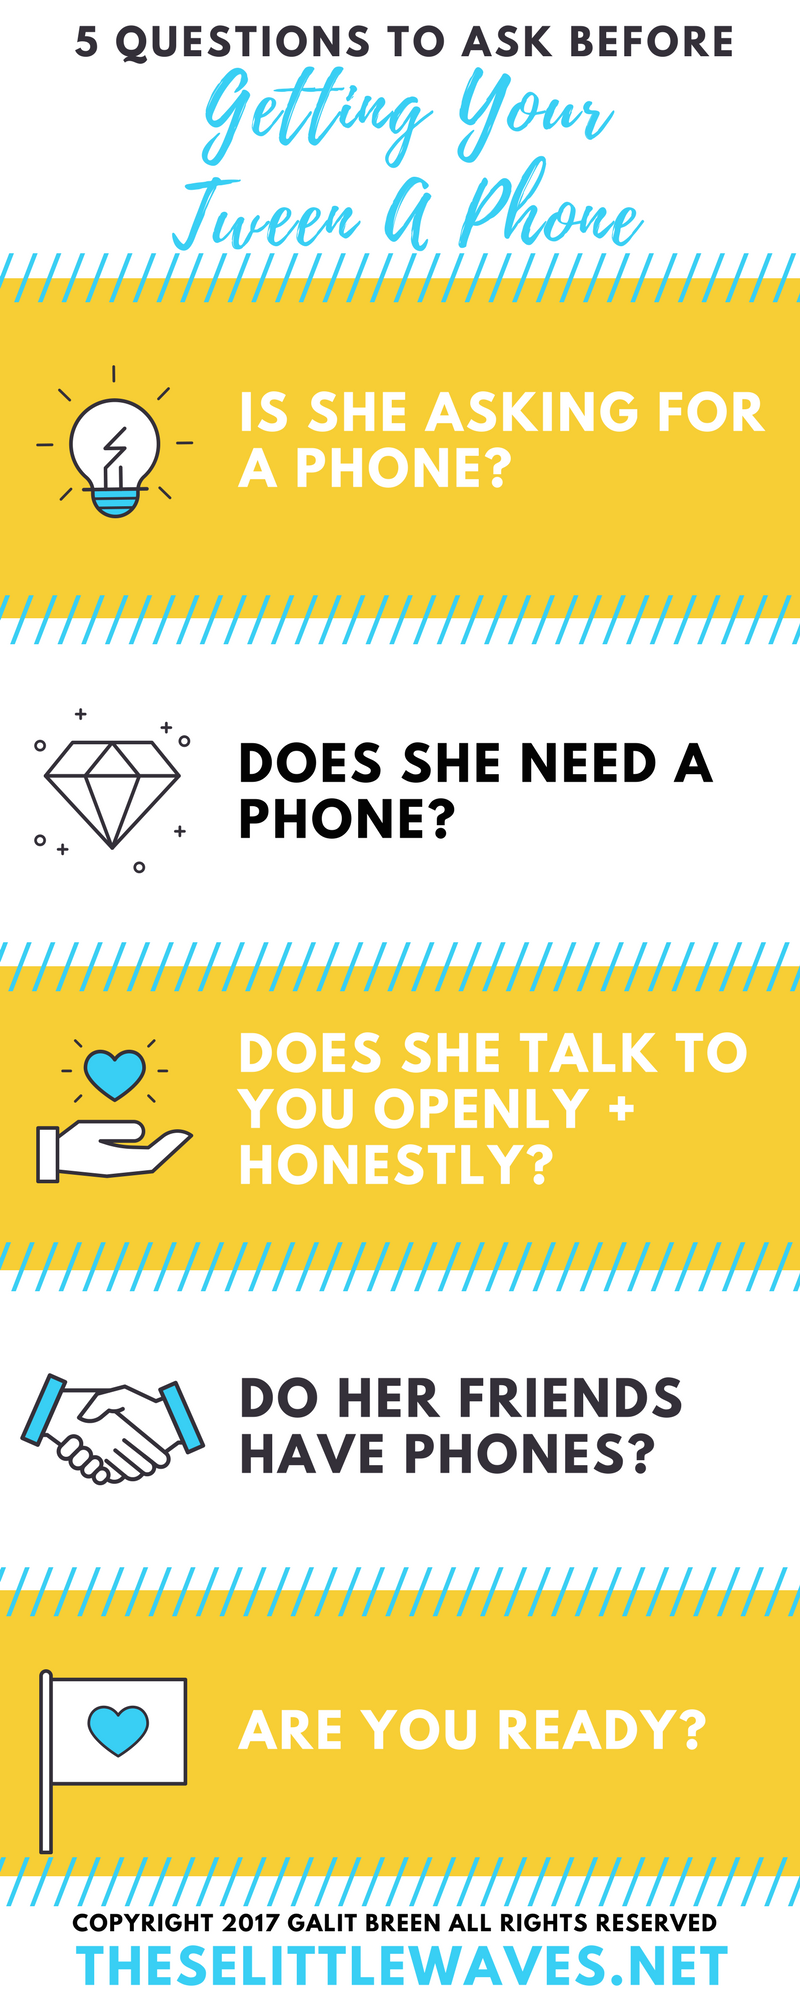 5 questions you need to ask before getting your tween a phone.png